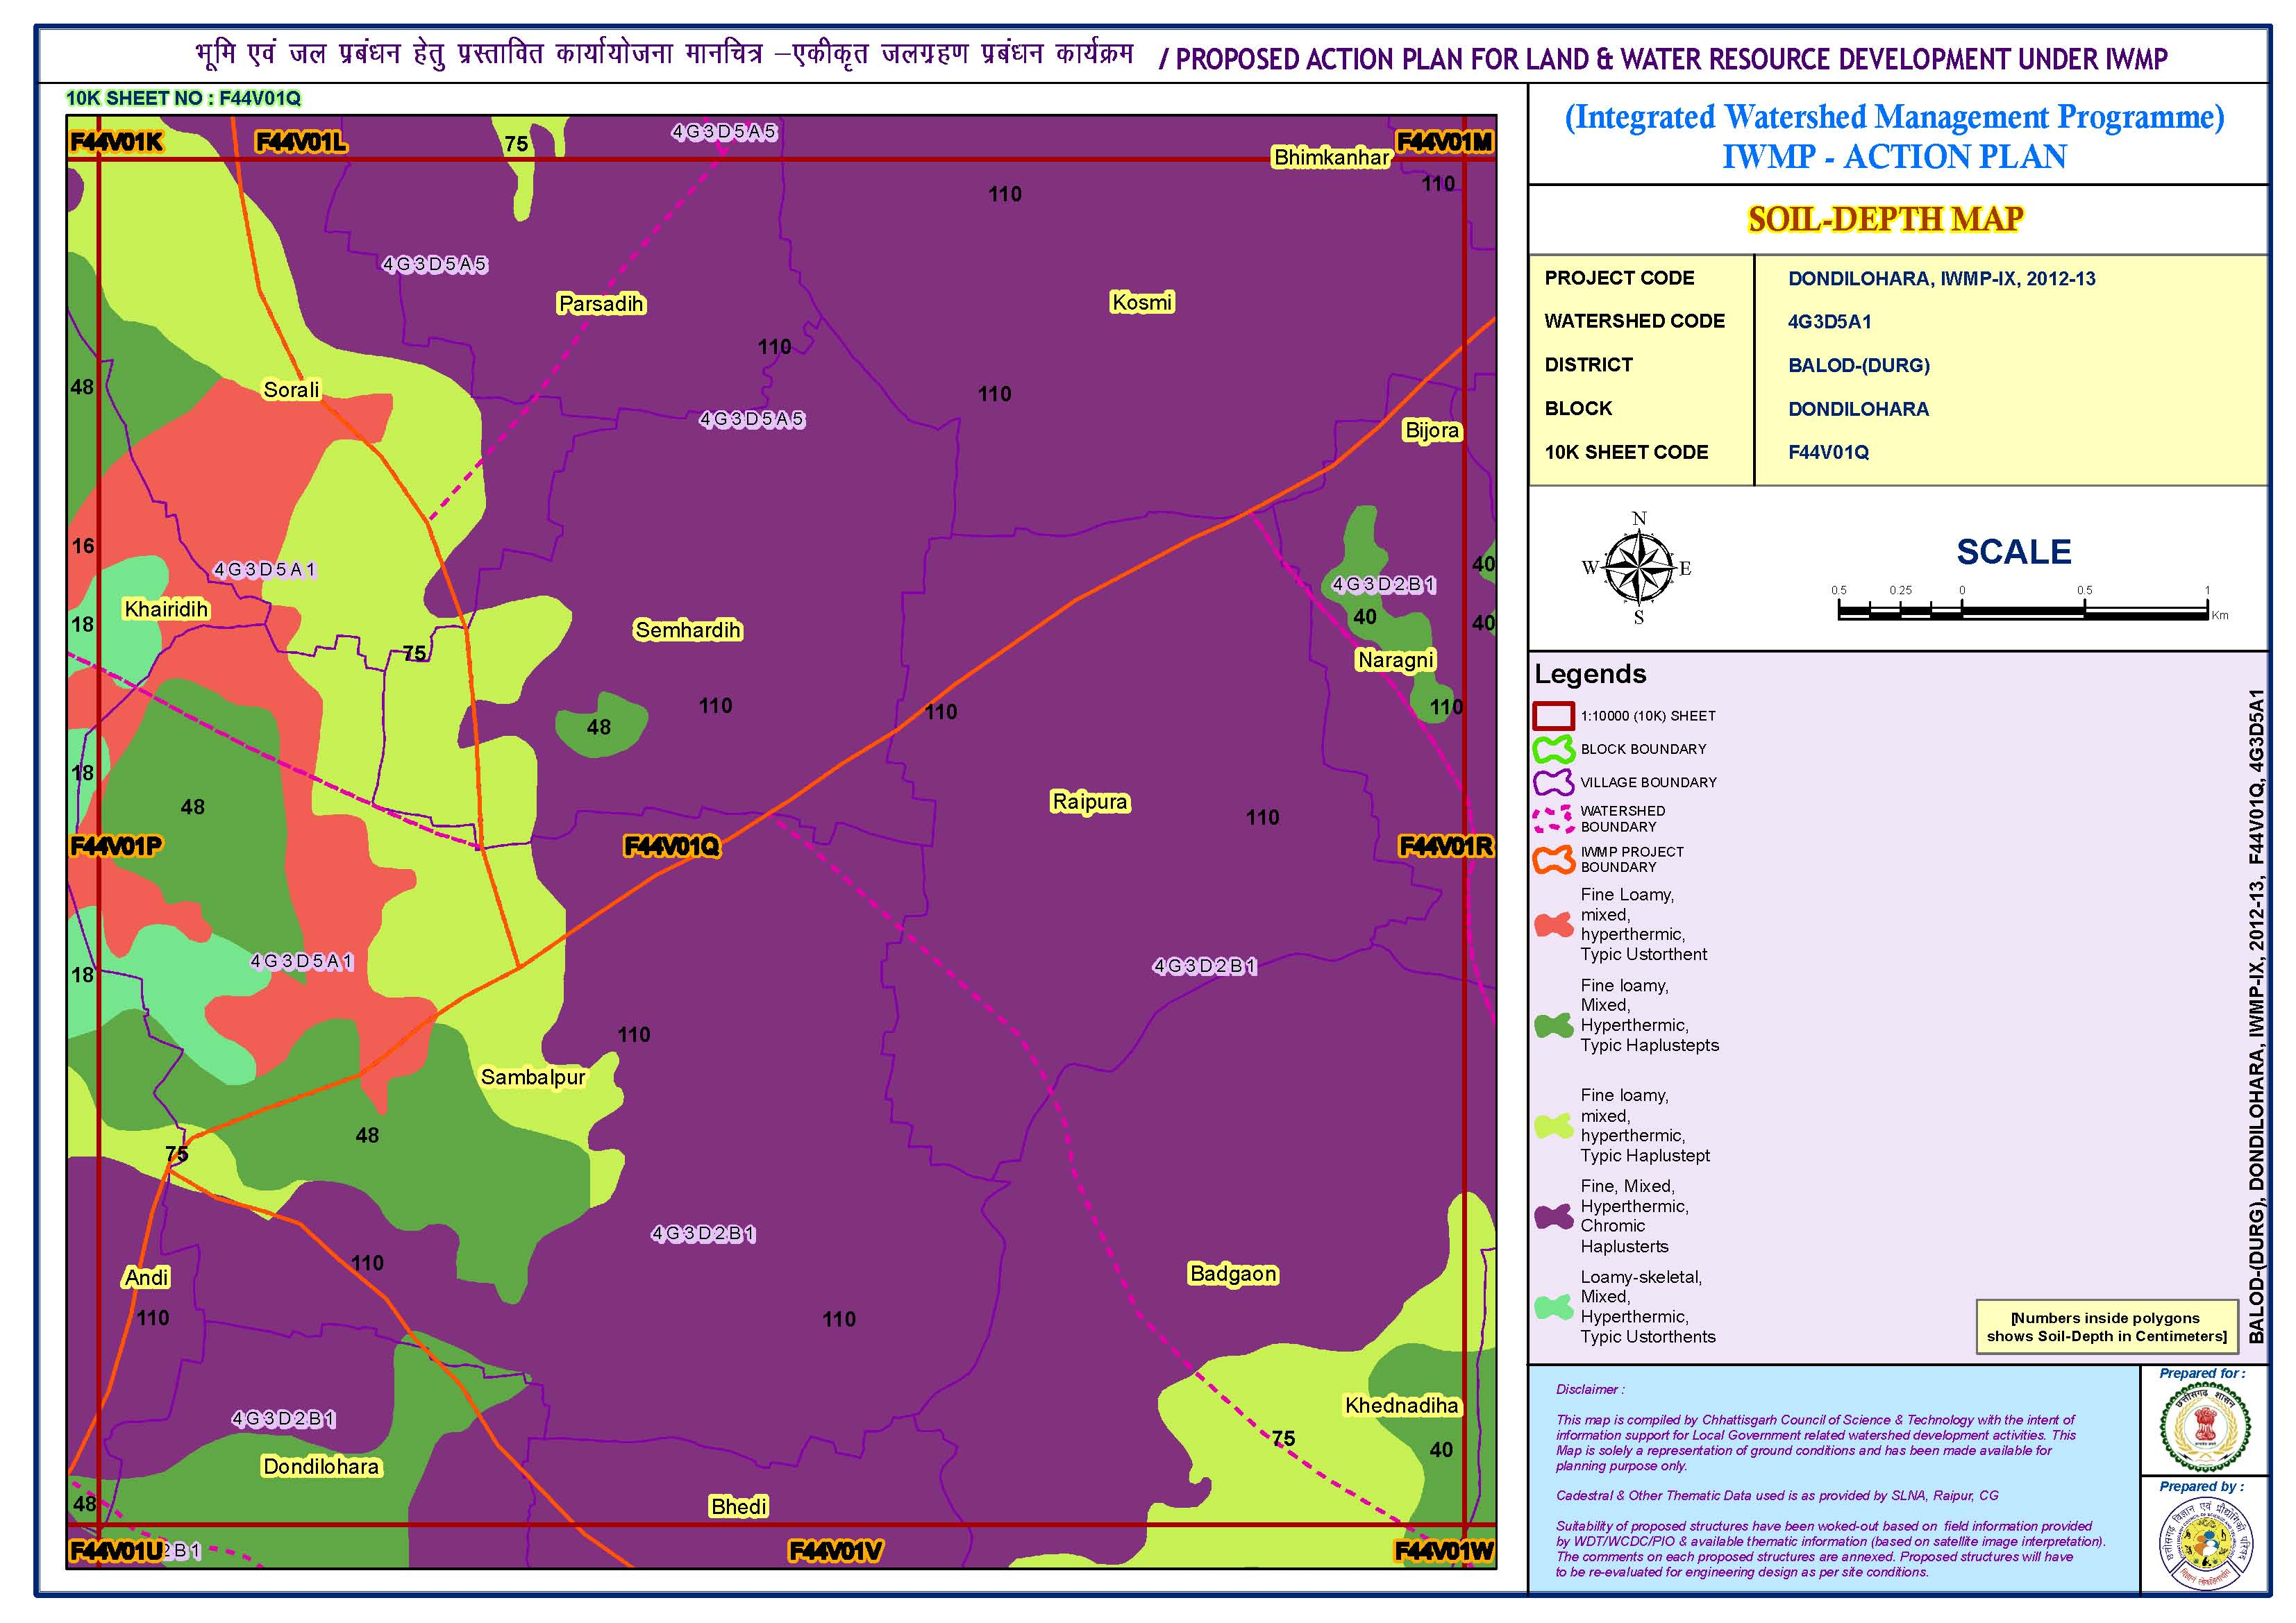 Proposed action plan for land and water resource development (Soil-depth map)